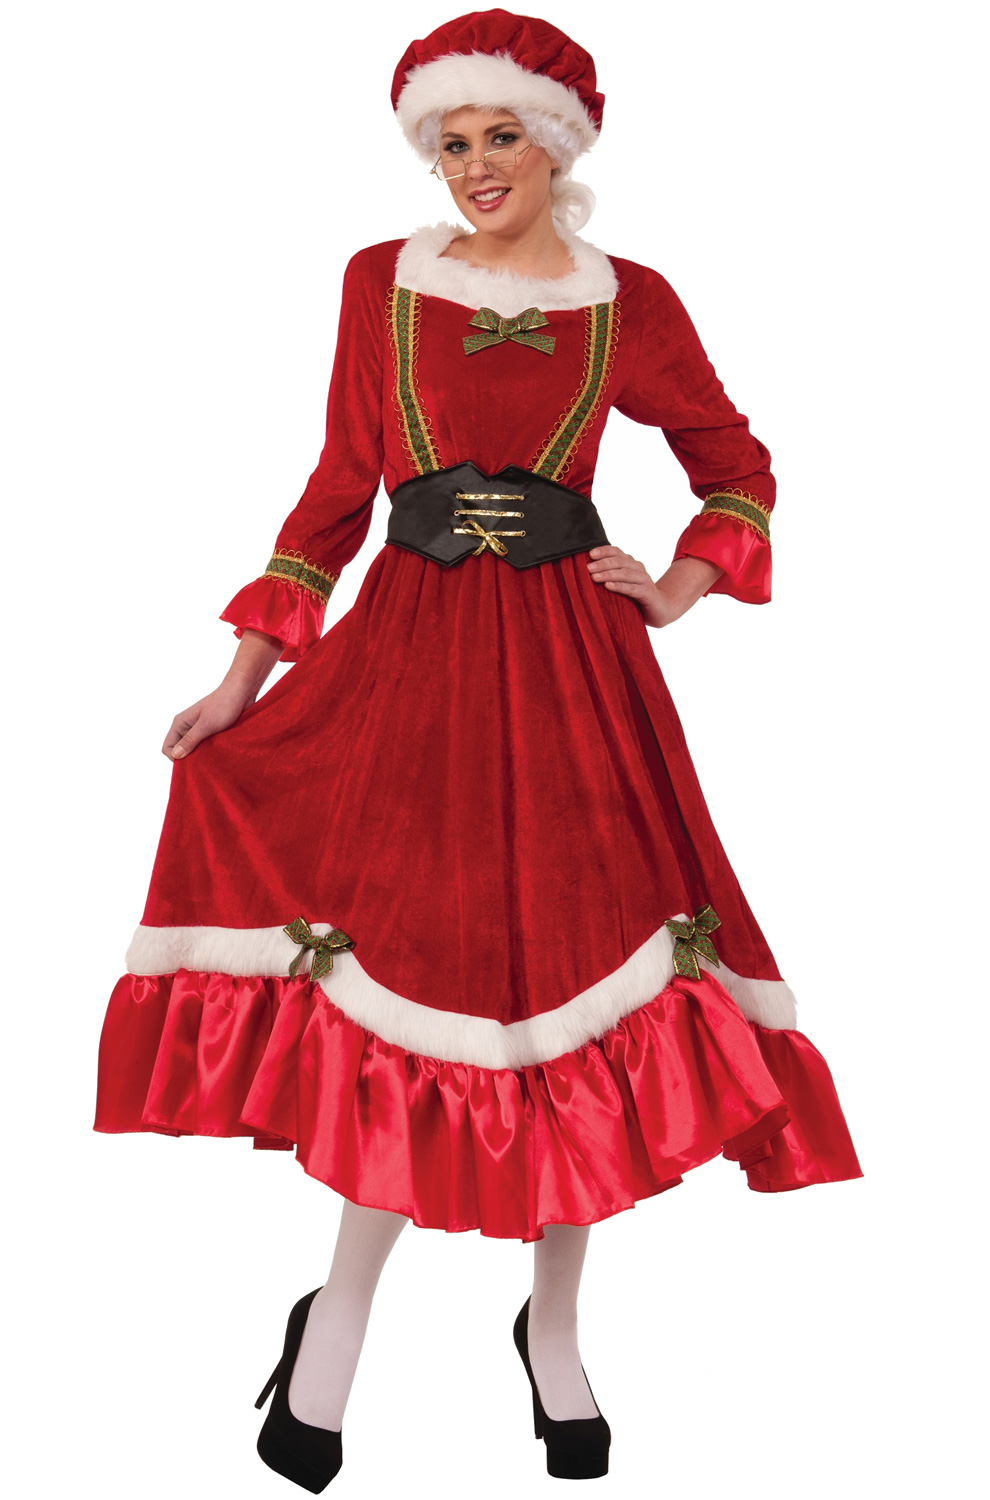 Jolly mrs santa claus plus size costume xl